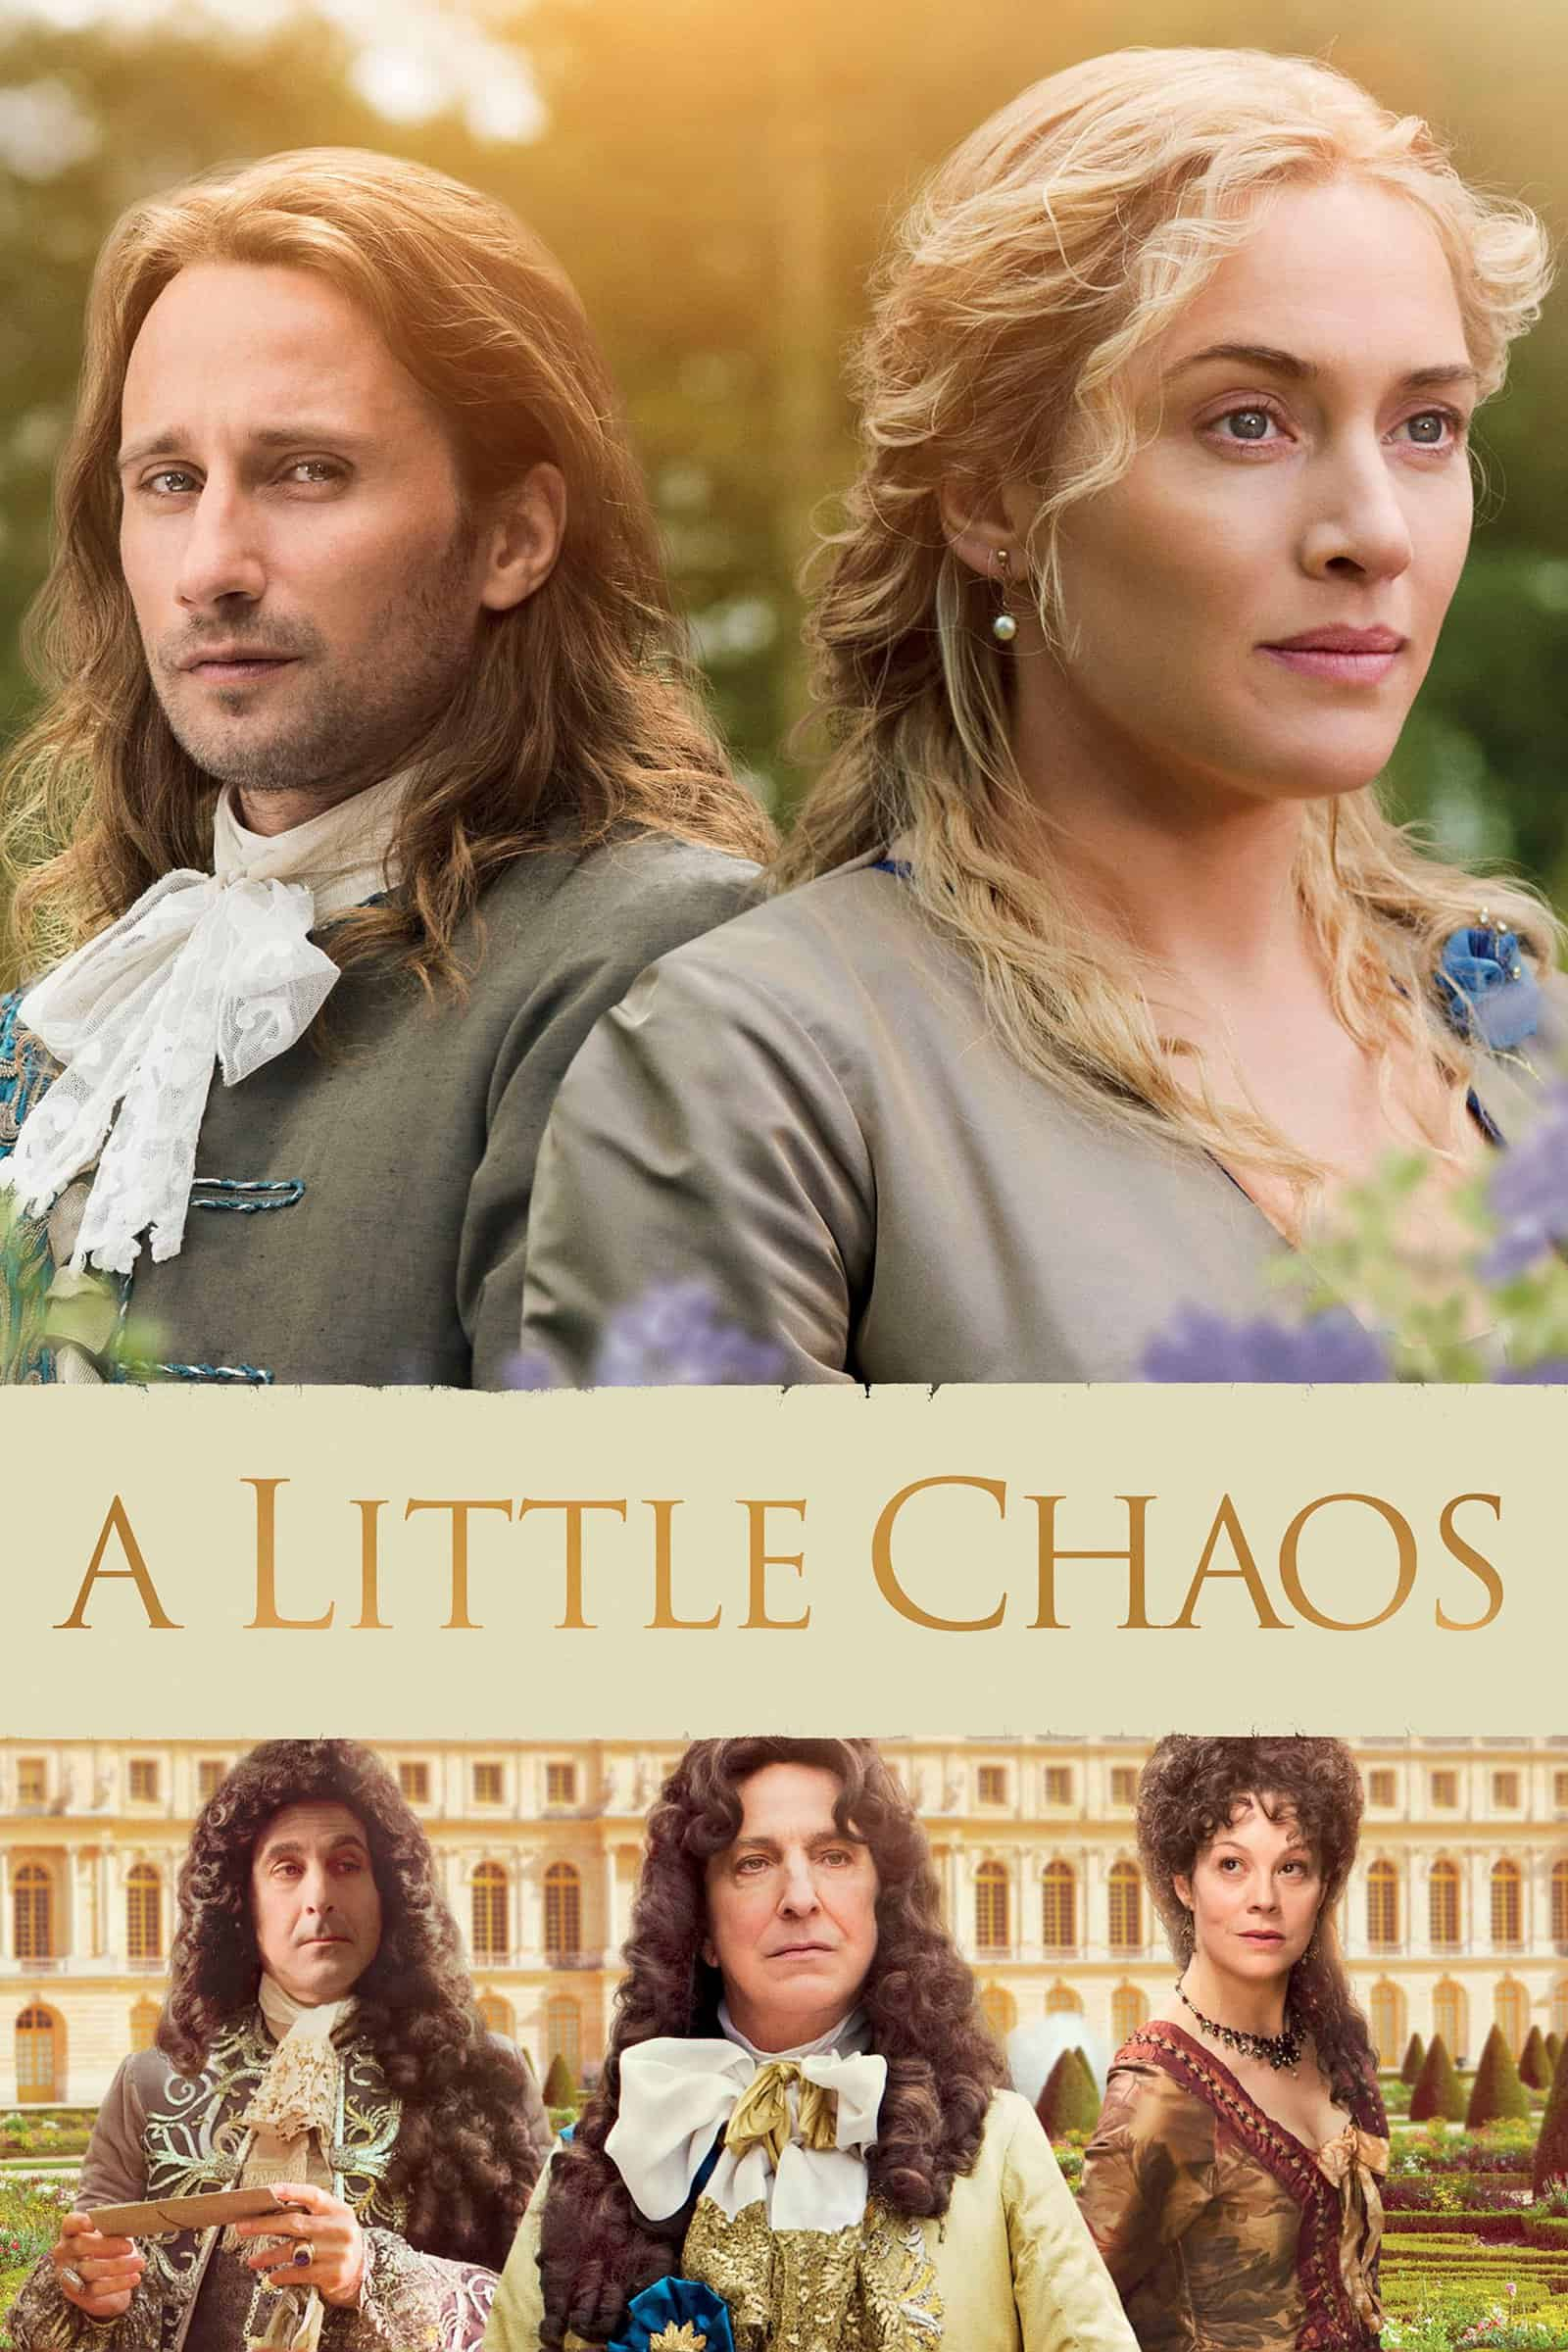 A Little Chaos, 2014